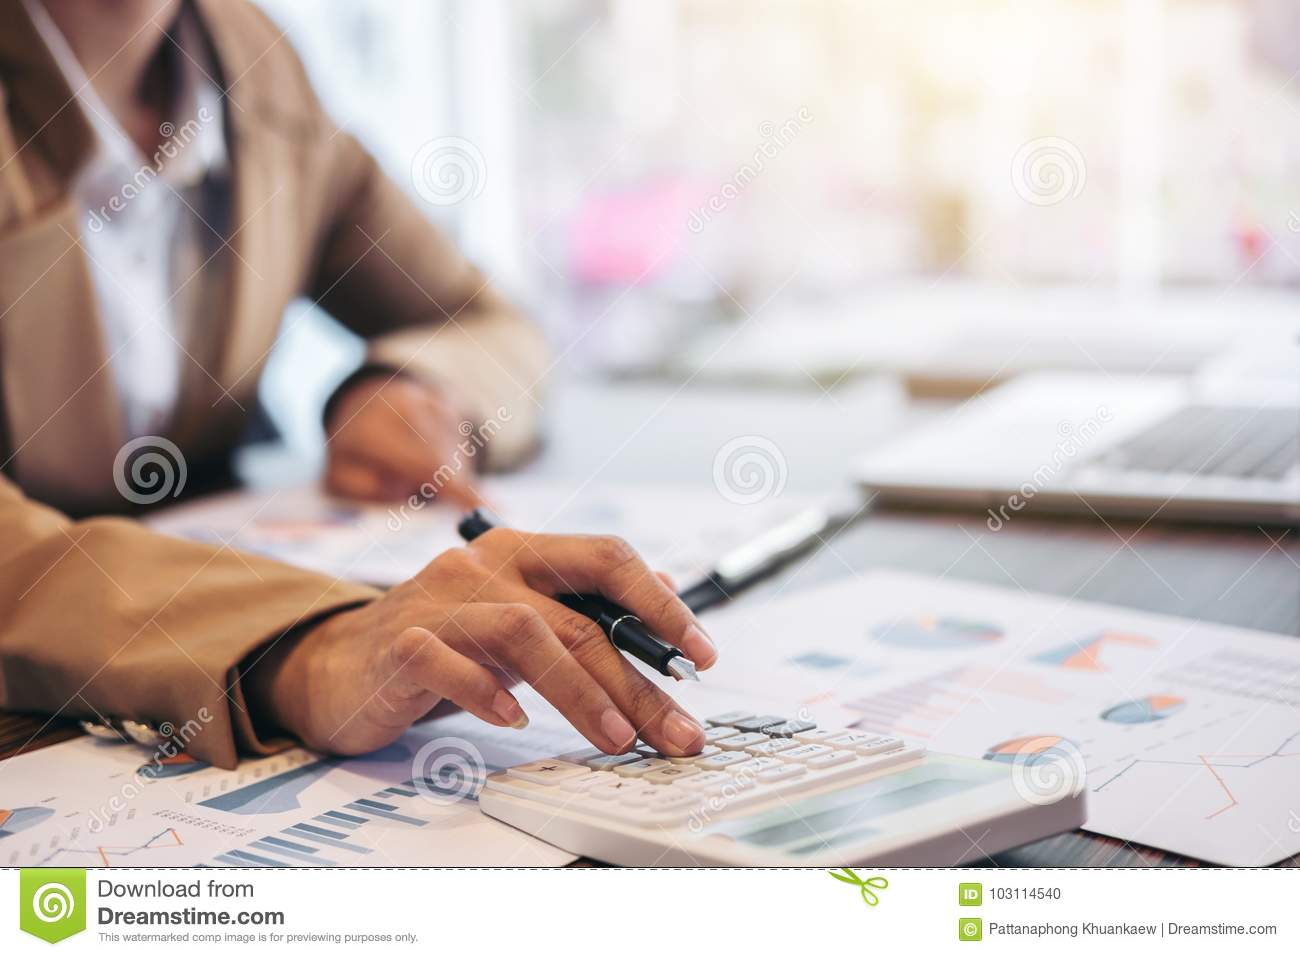 Business Financing Accounting Banking Concept, businesswoman doing finances and calculate about cost to real estate investment